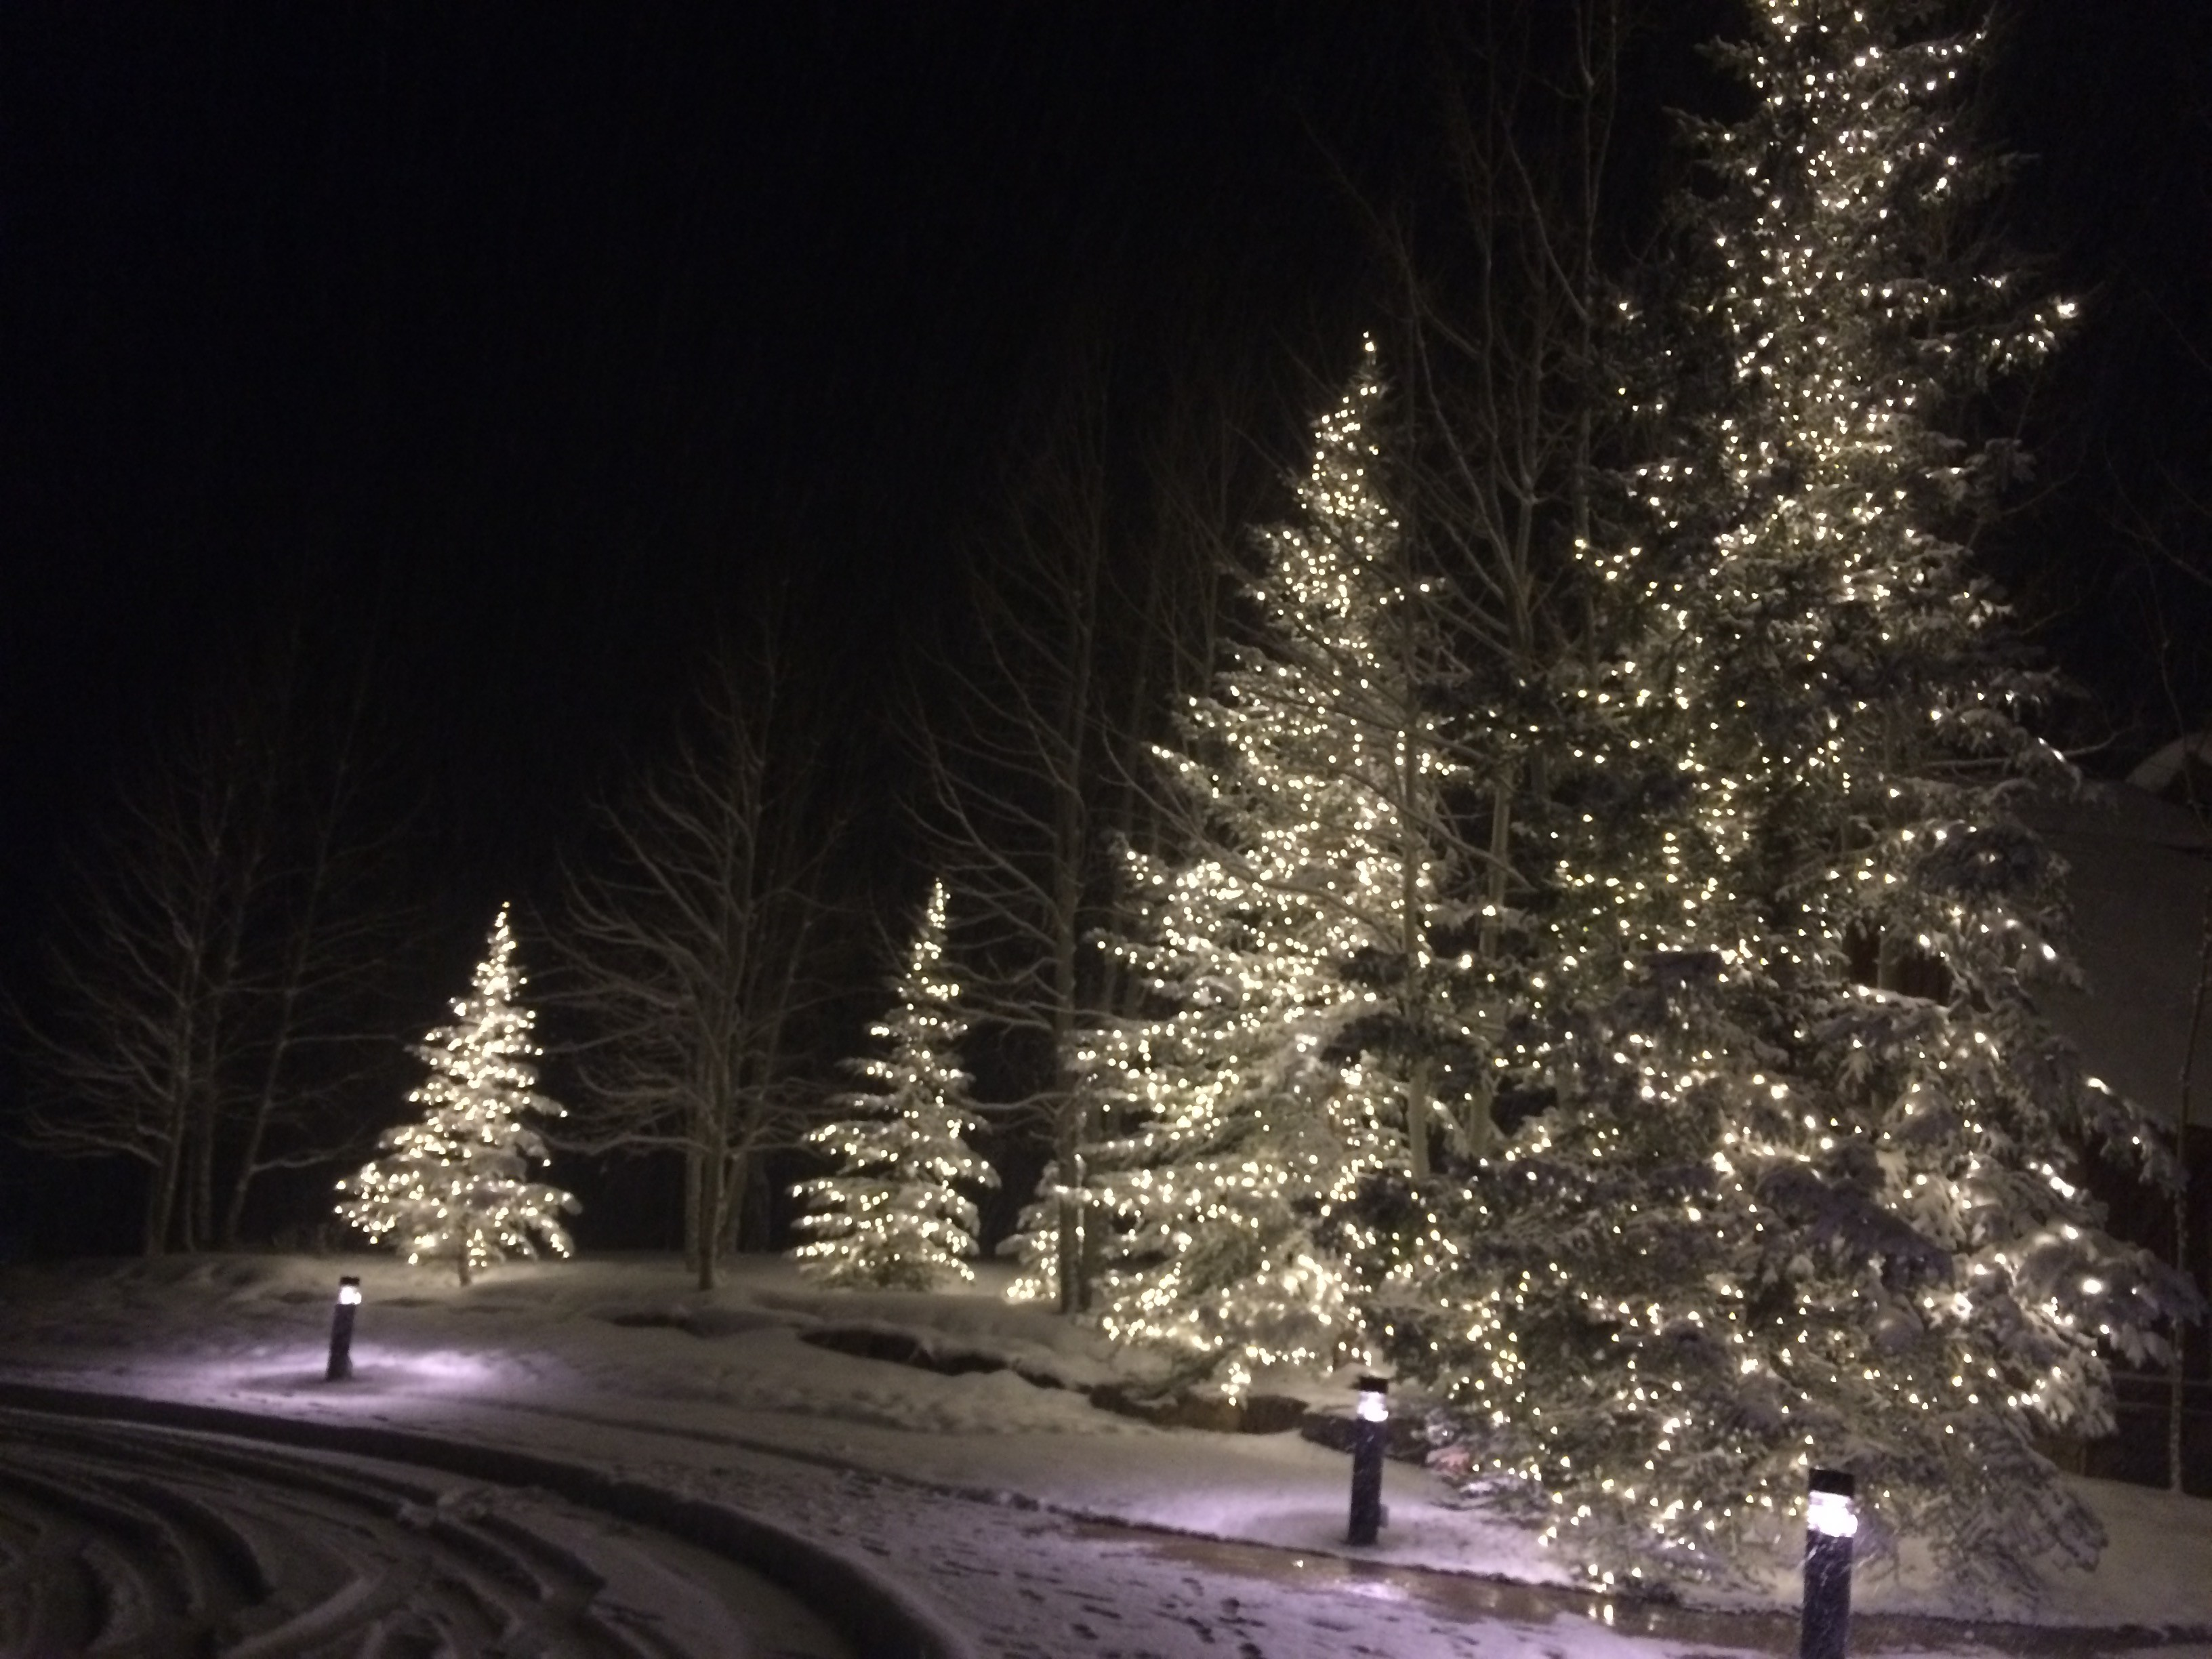 The mountain communities along Interstate 70 west of Denver leave the decorative tree lights on all winter. These are on the grounds of the Club at Cordillera, a golf resort near Edwards, Colo.